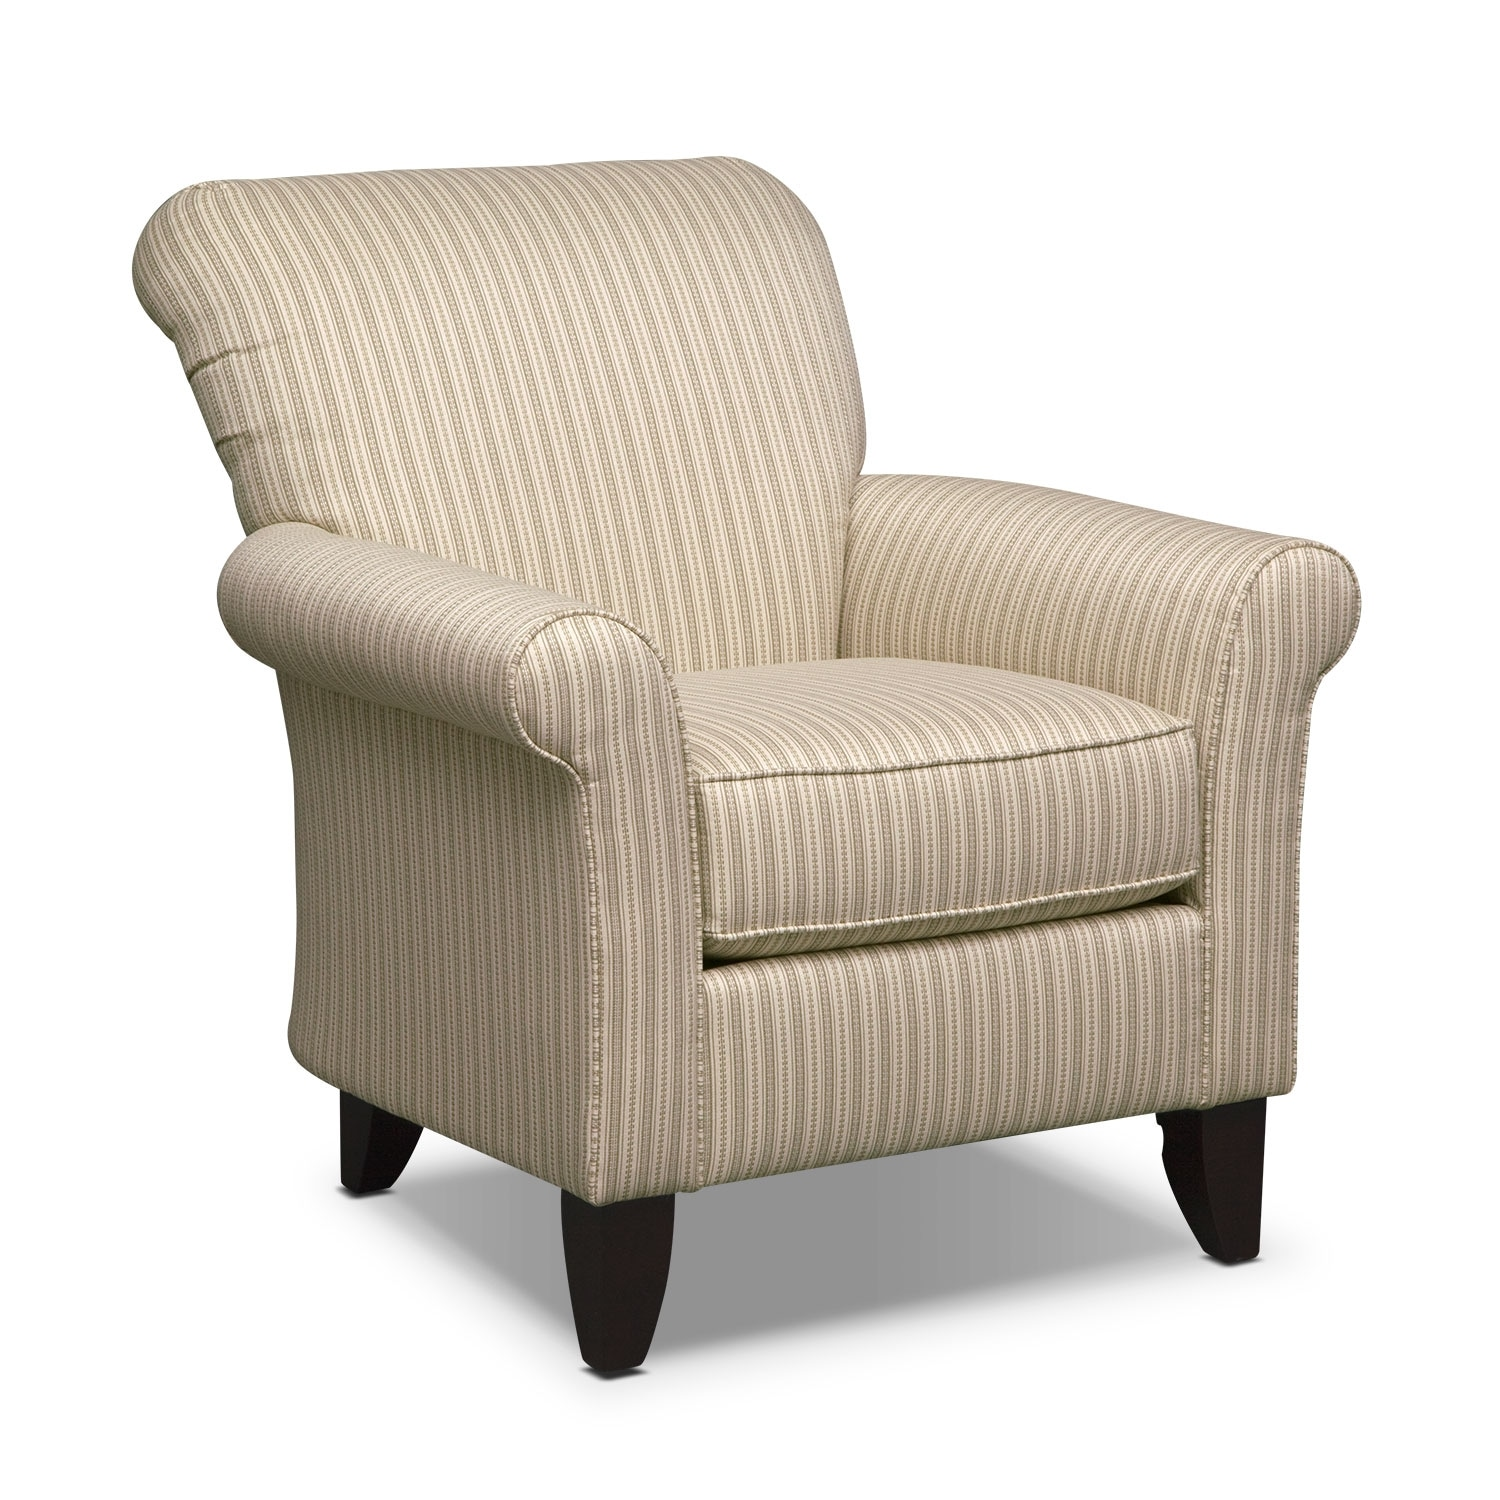 Living room furniture harlow khaki accent chair for Furniture chairs